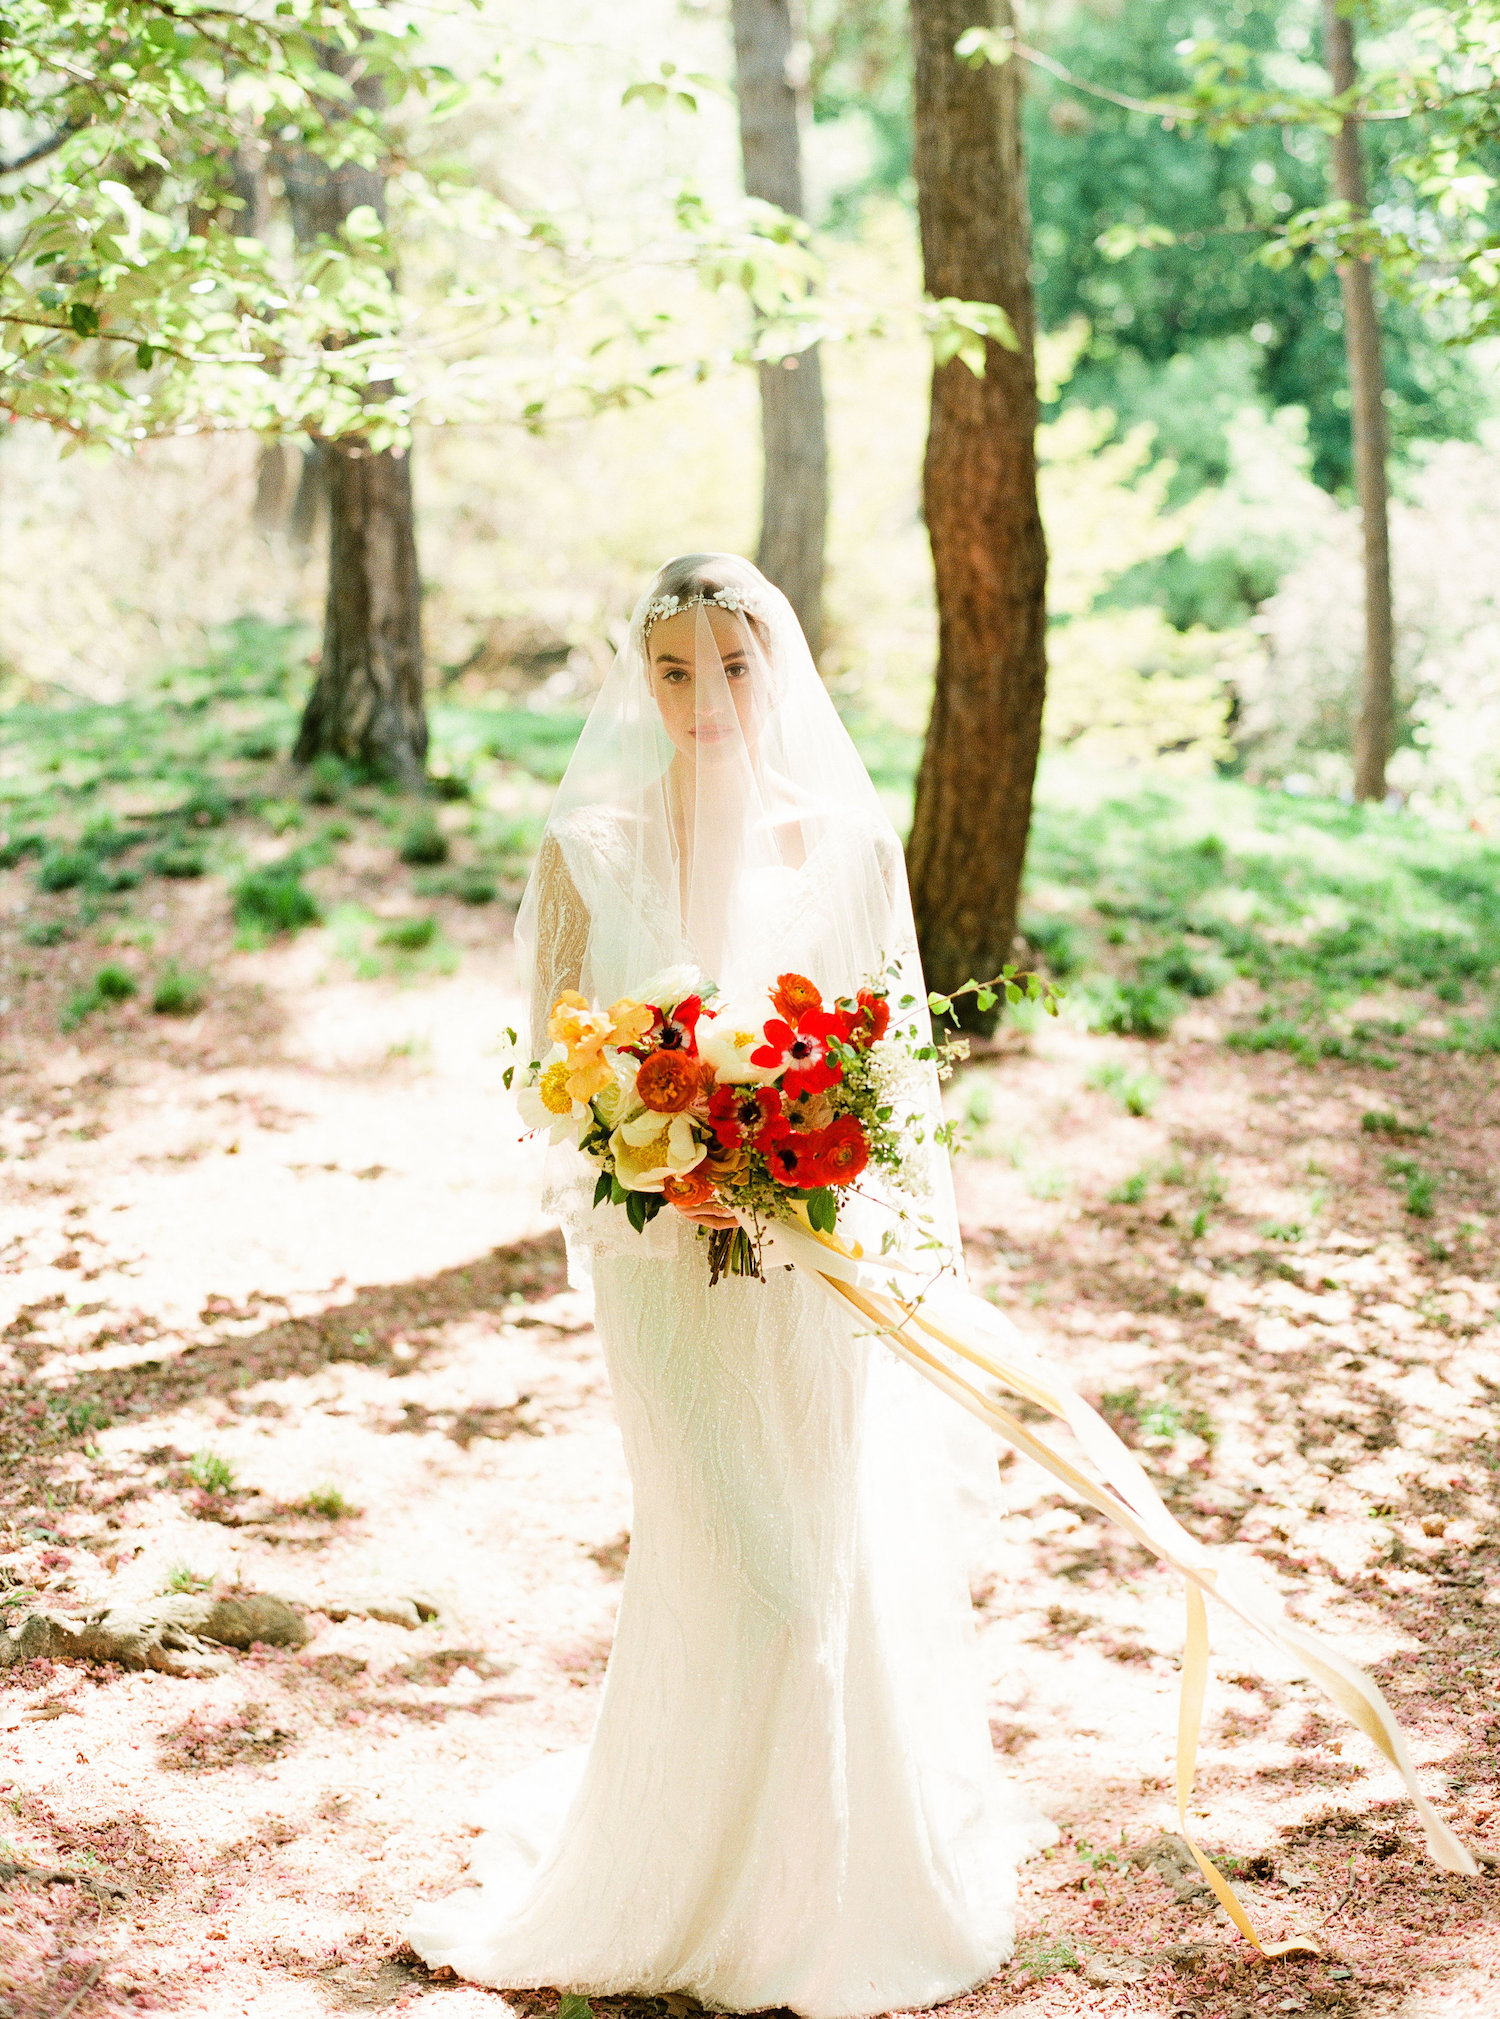 Morning Glow - Full Aperture Floral & Lindsay Madden Photography 17.jpeg